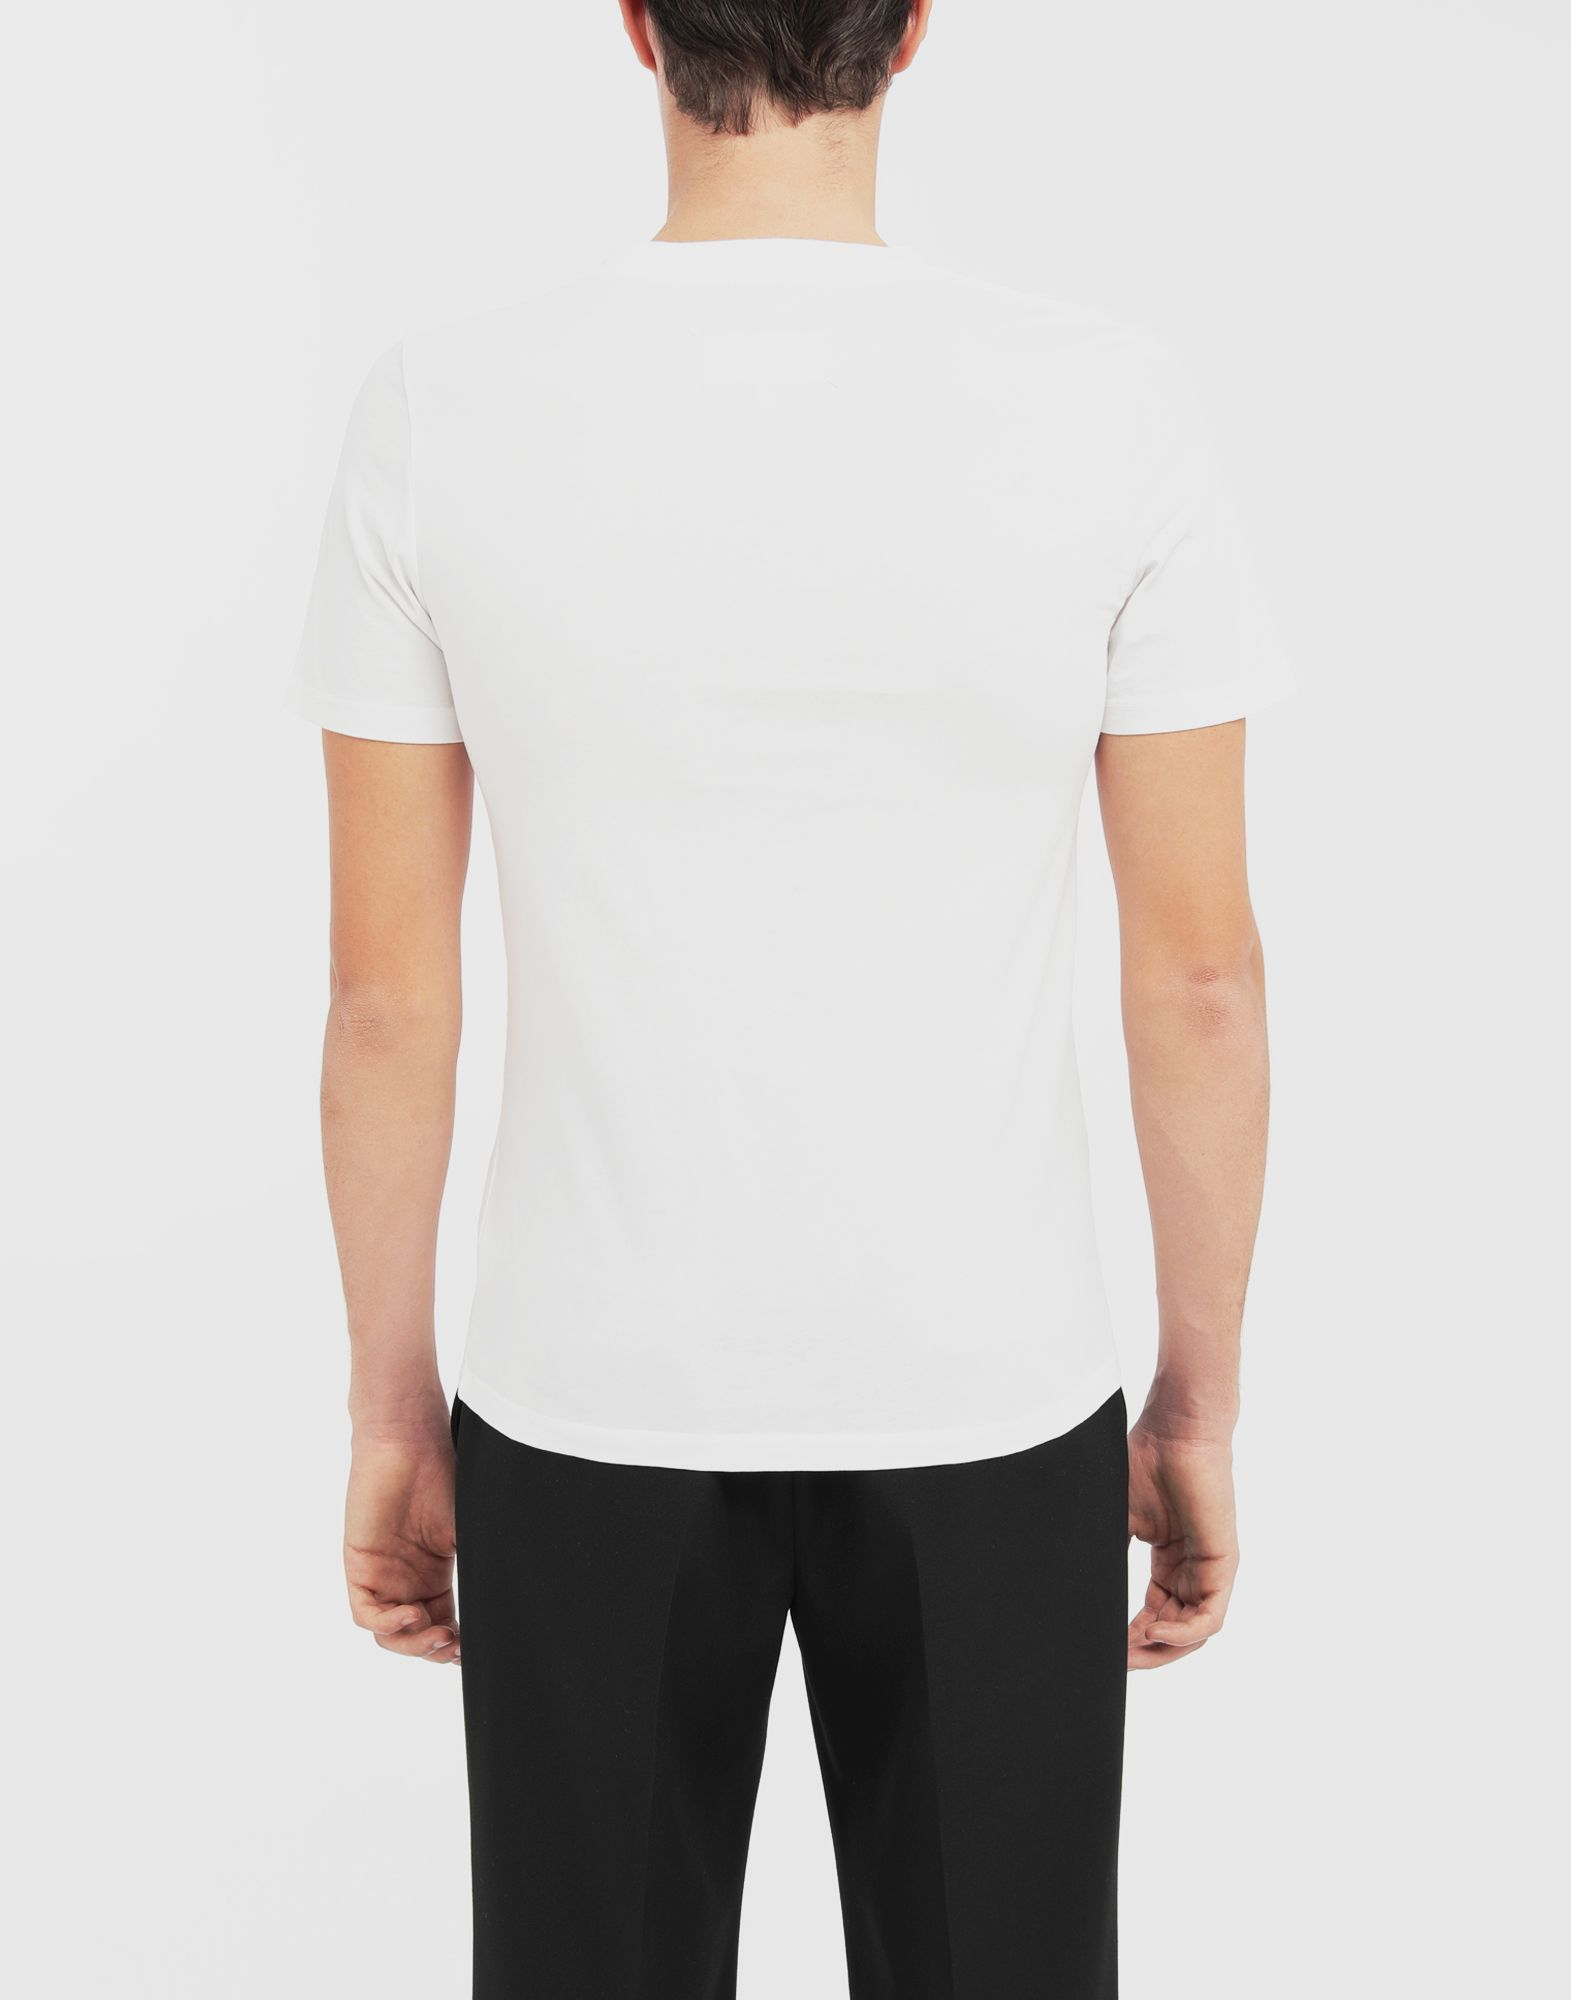 MAISON MARGIELA Stereotype T-shirt Short sleeve t-shirt Man e